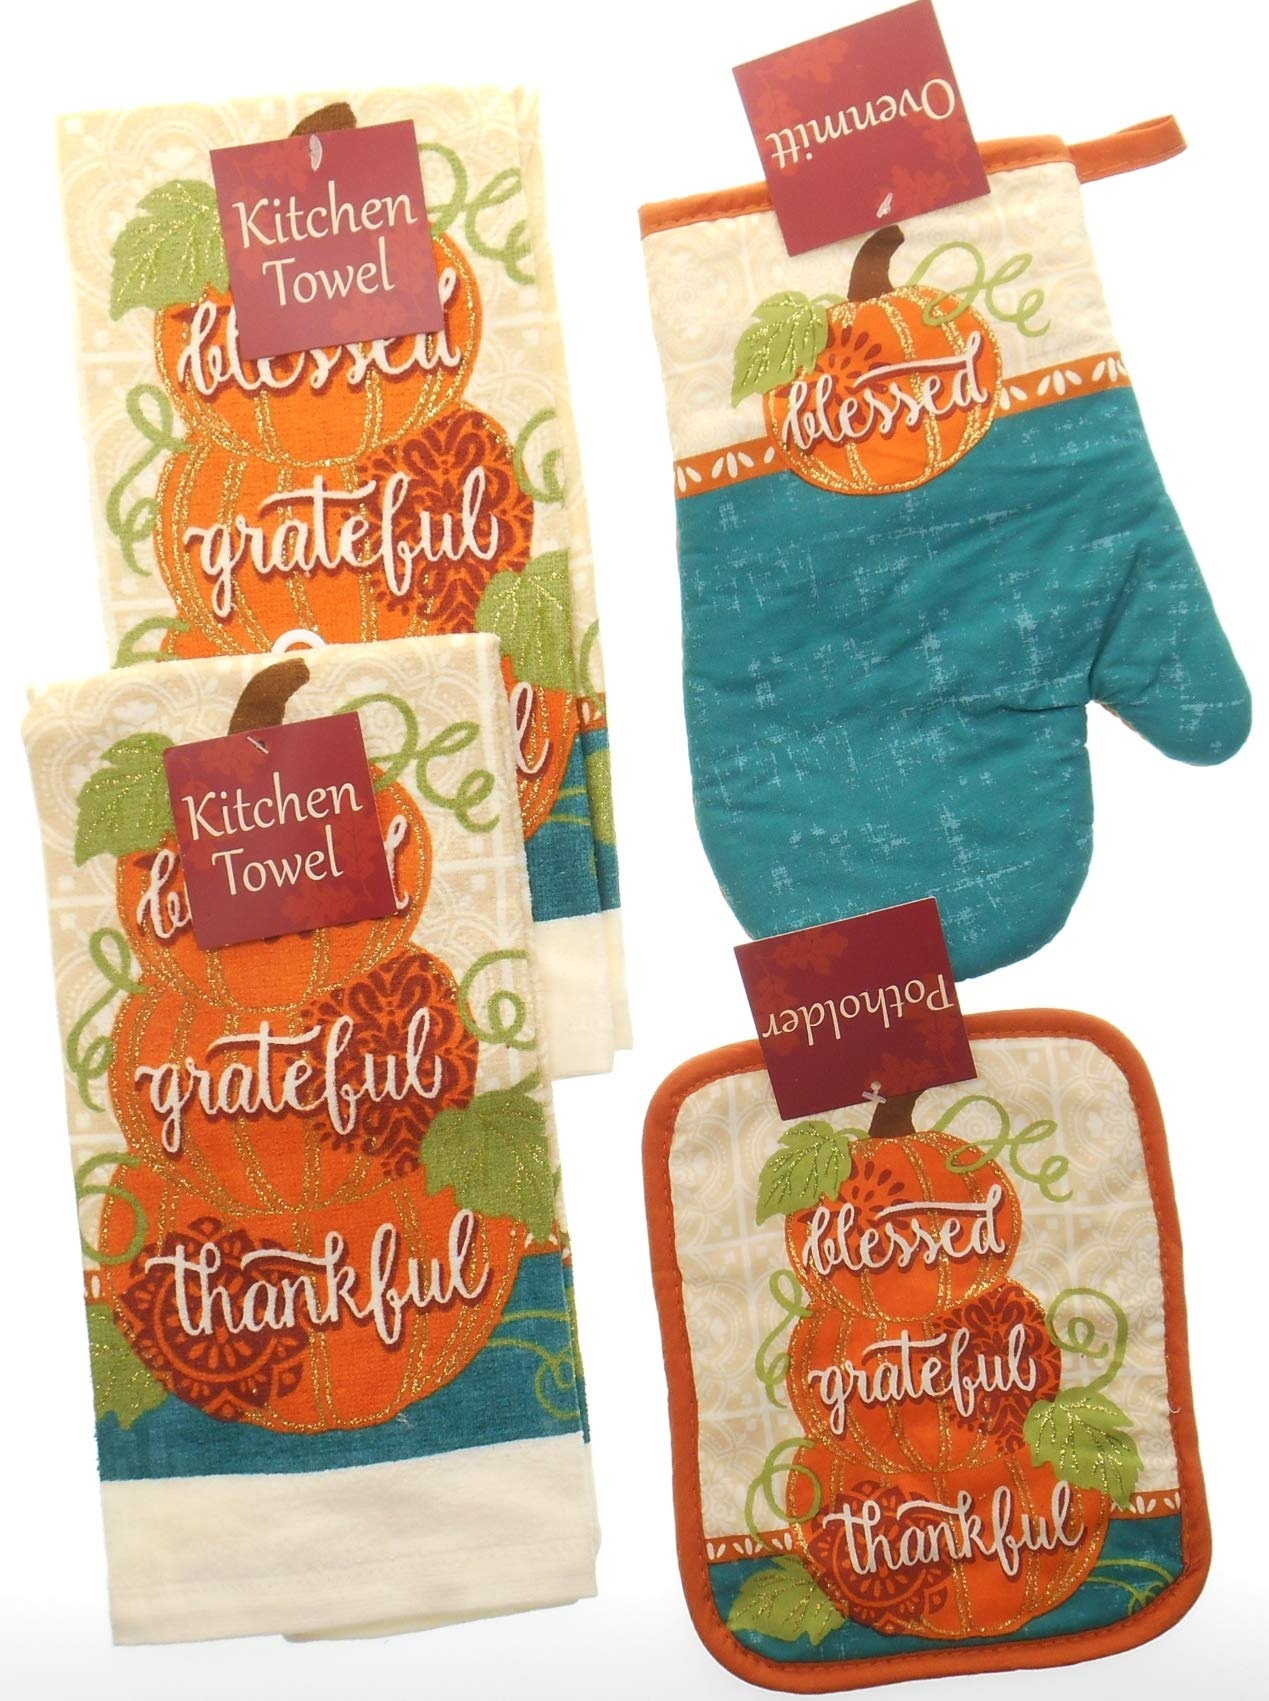 Fall Kitchen Towel Set - Blessed,Grateful, and Thankful on Pumpkins and accented with Teal and Glitter. Featuring Bundle of 4 includes 2 Towels, 1 Oven Mitt and 1 Pot Holder .Fall Kitchen Towels Set.